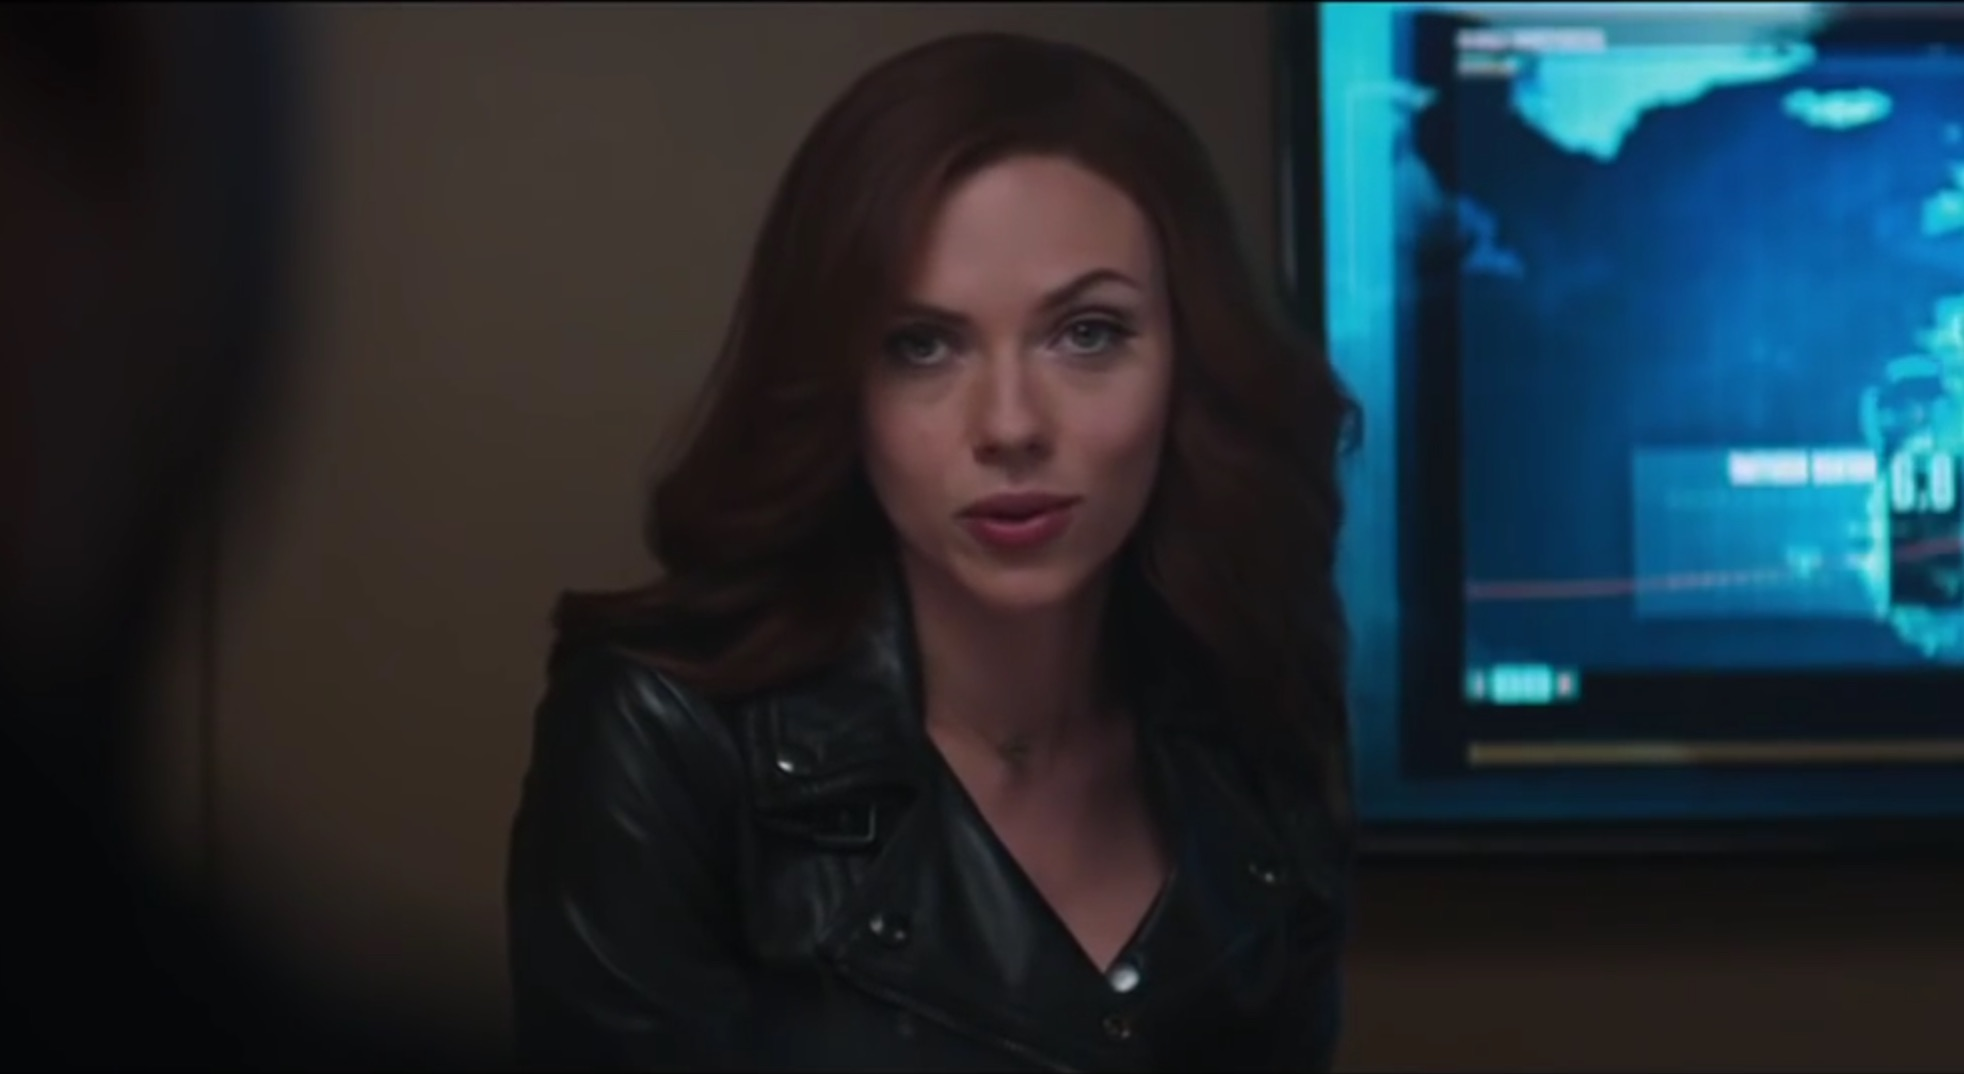 """We're FLIPPING out for this deleted """"Captain America"""" scene with Black Widow AND Black Panther"""